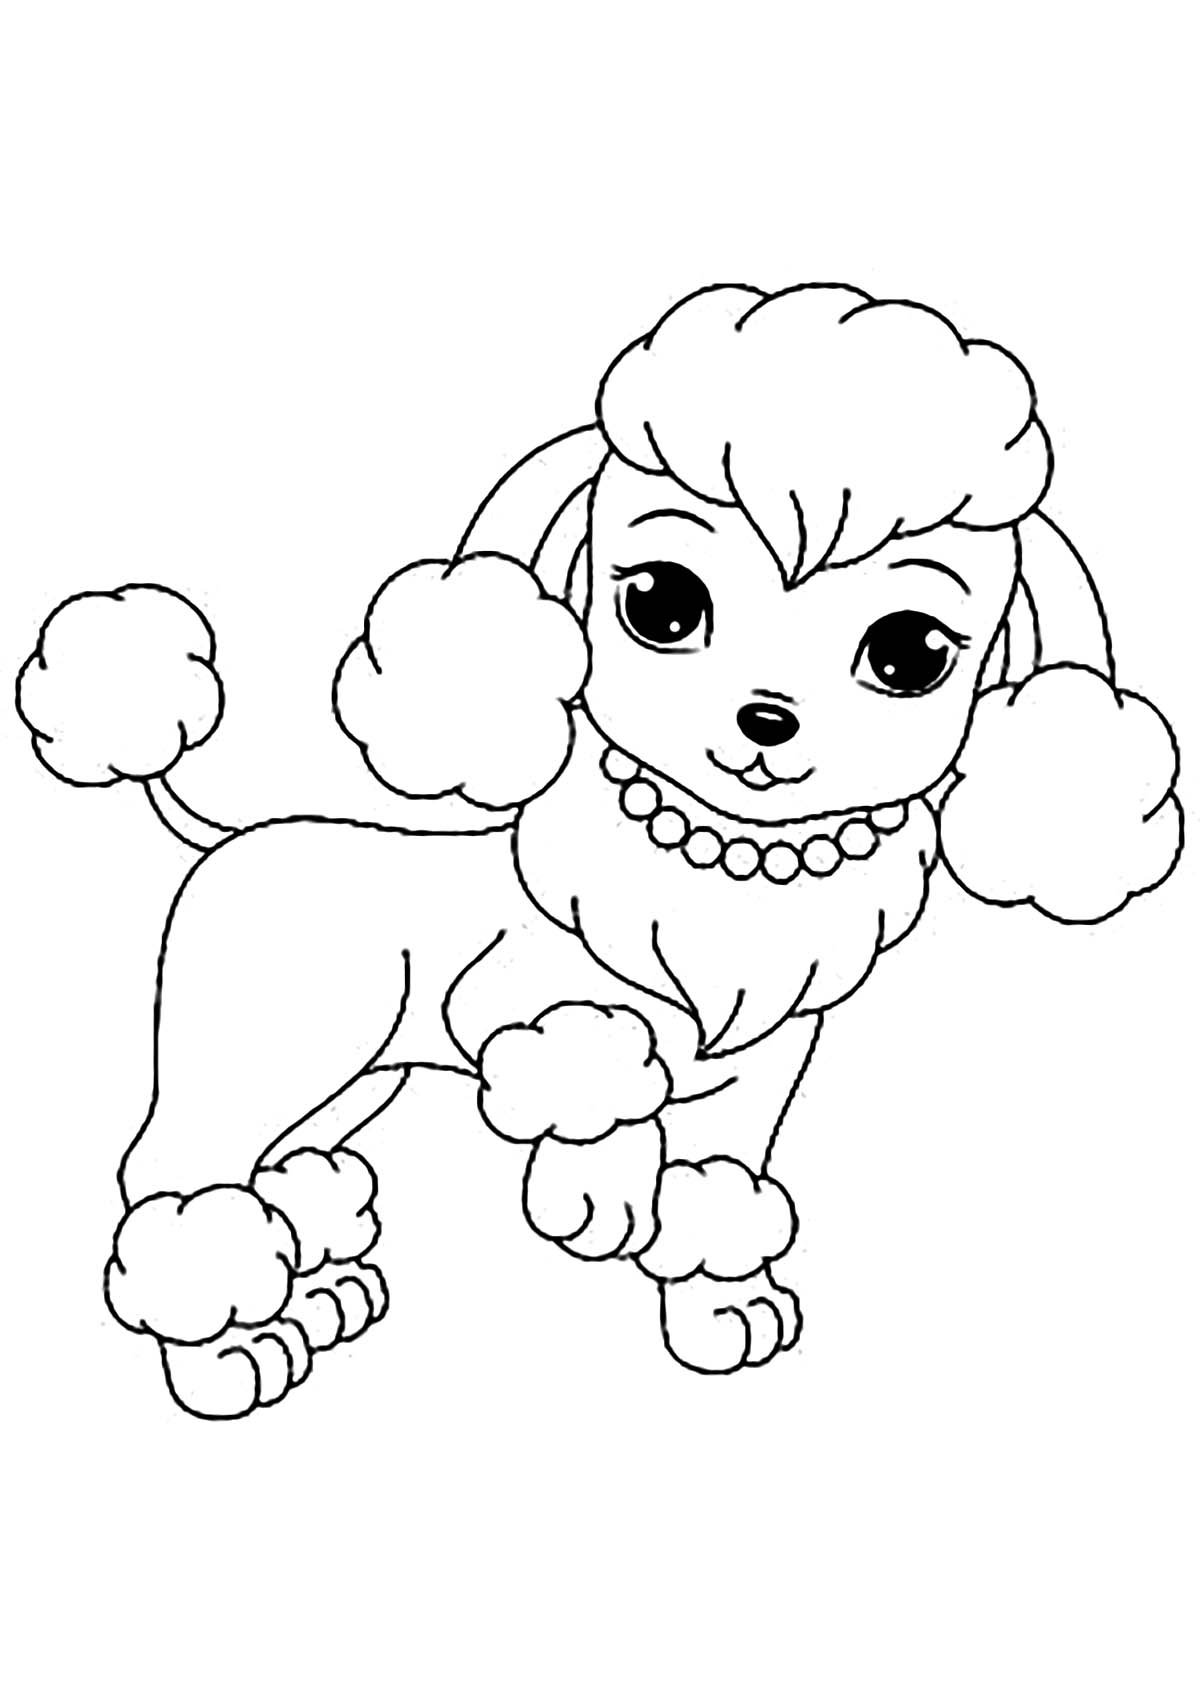 kids coloring puppy dog to color for kids dogs kids coloring pages kids puppy coloring